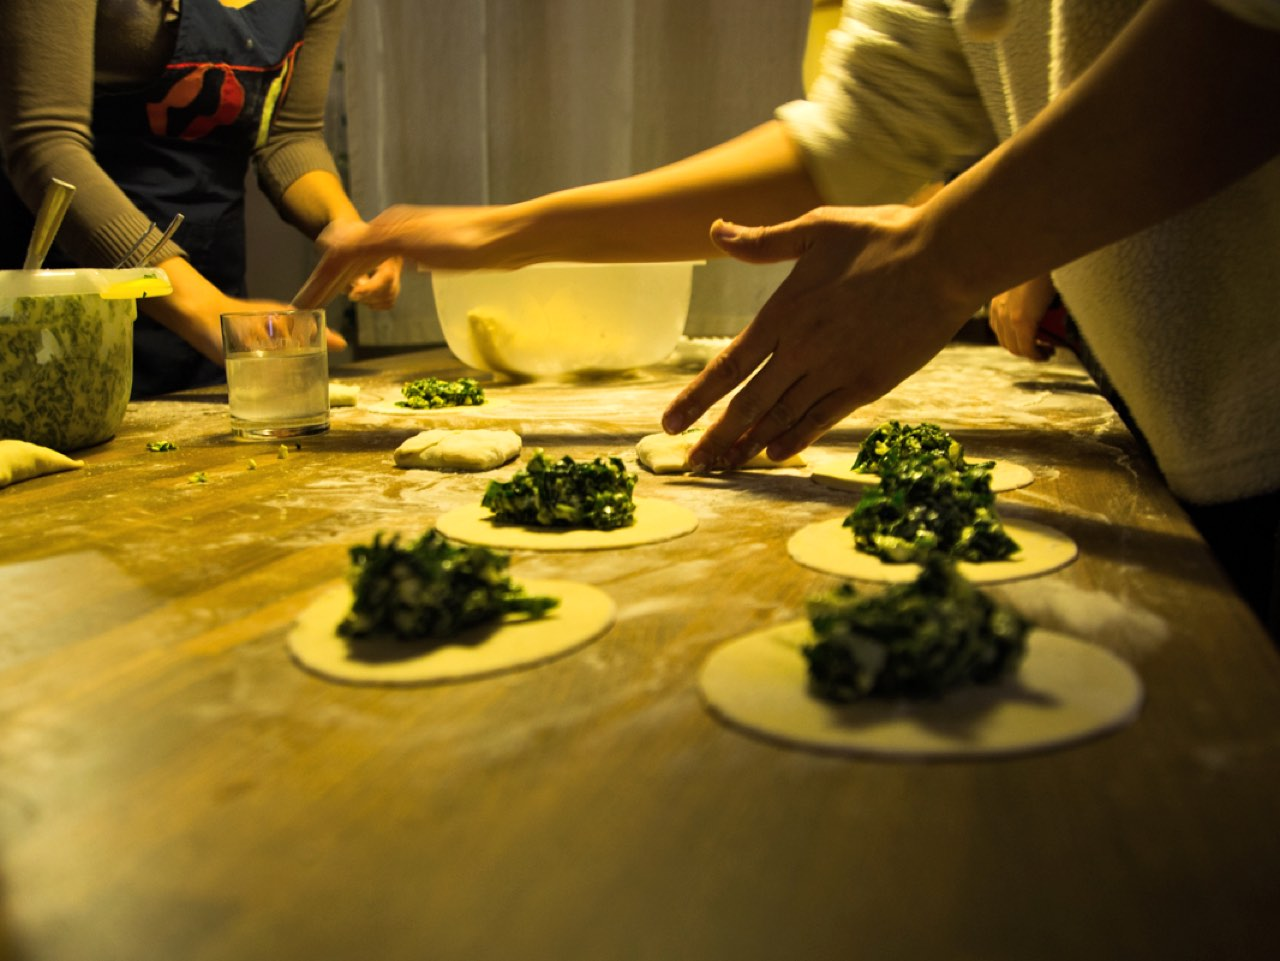 Cooking Workshop at Milia Mountain Retreat, cooking lessons milia traditional hotel crete, traditional cooking lessons milia hotel crete, best cooking workshop milia ecotourism hotel, stay and cook hotel crete, cooking lessons hotel crete